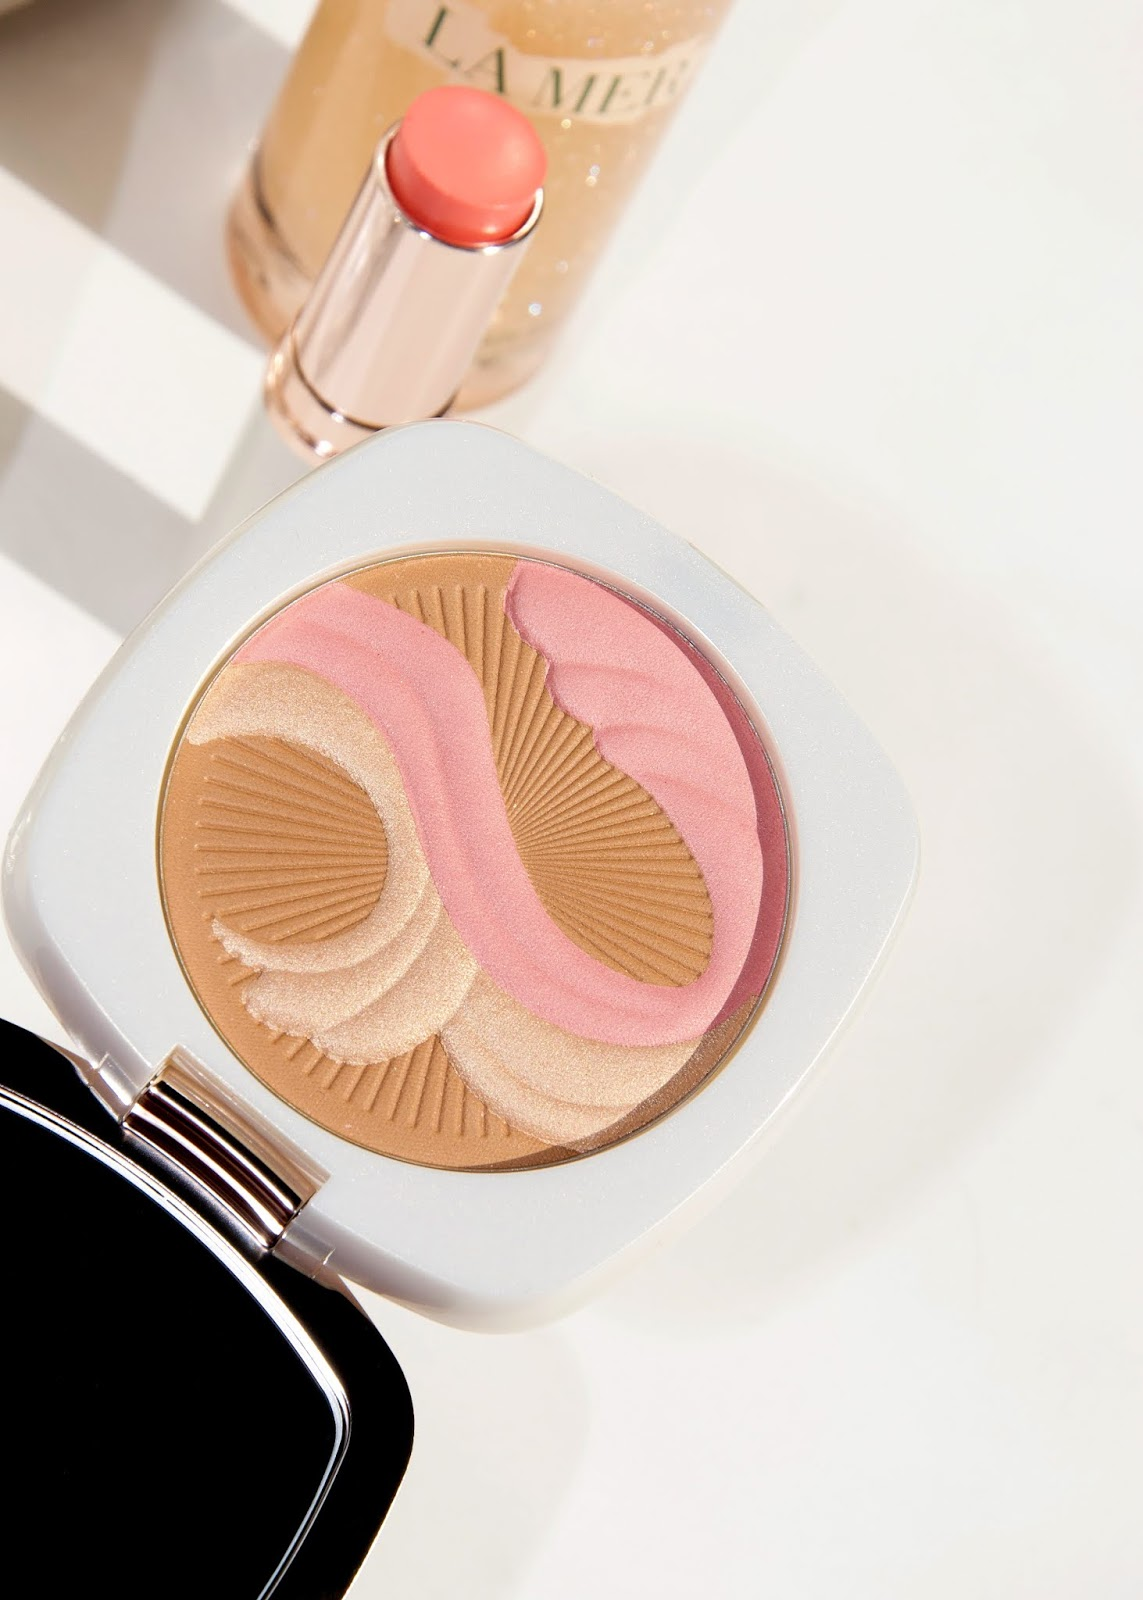 la mer bronzer 2018 review and swatches